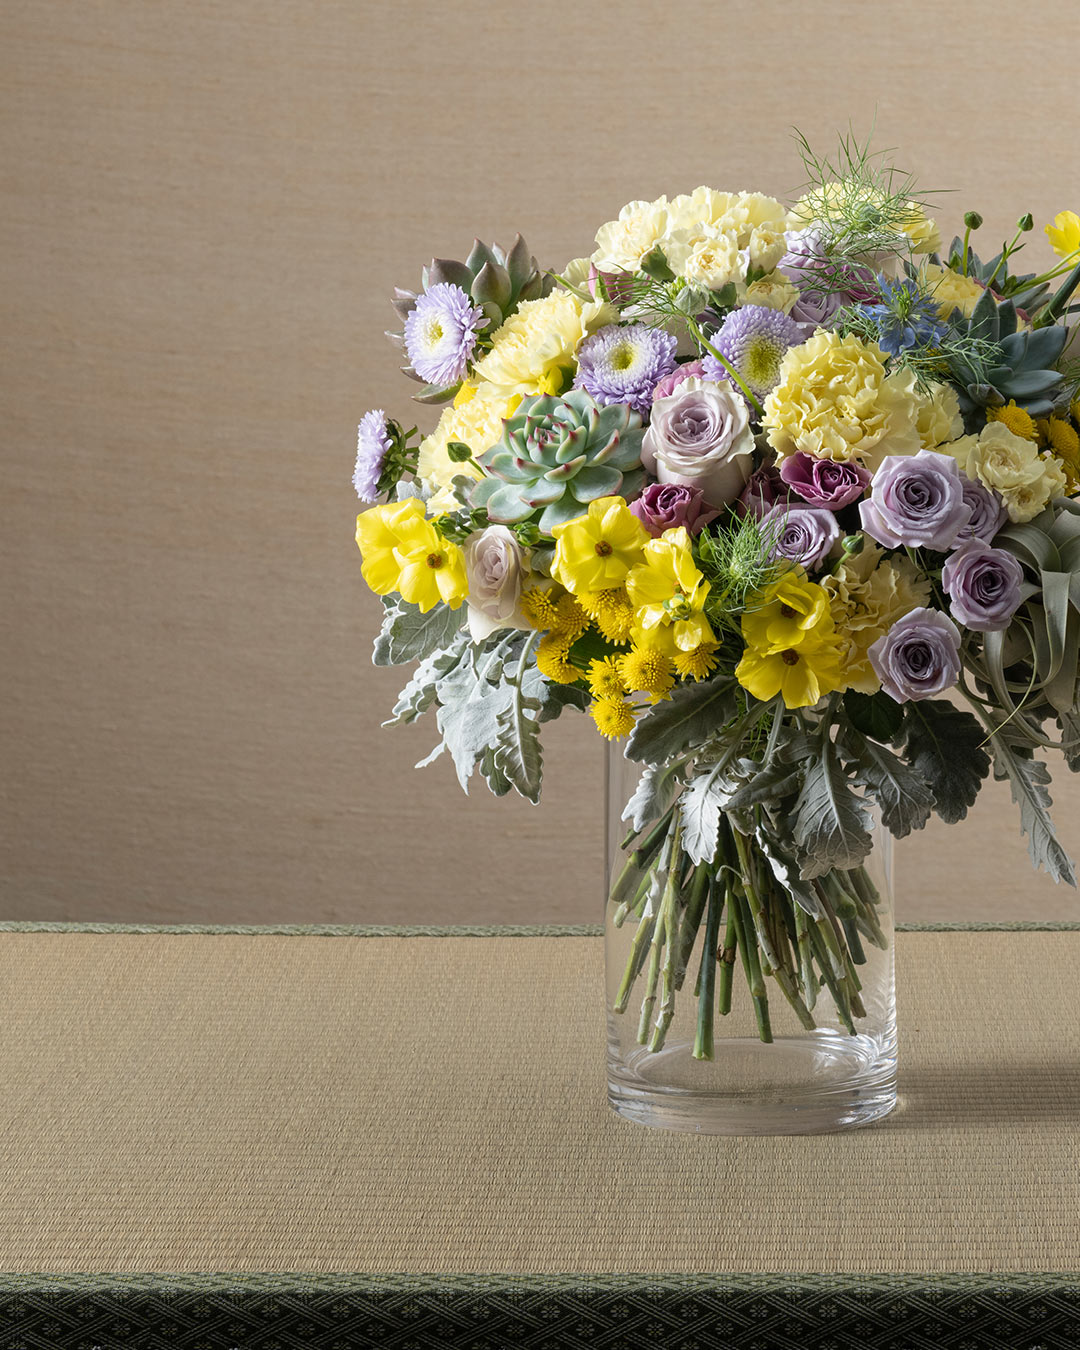 Mobile banner image of Mother's Day flower bouquet of Carnation and Rose for the online flower collection